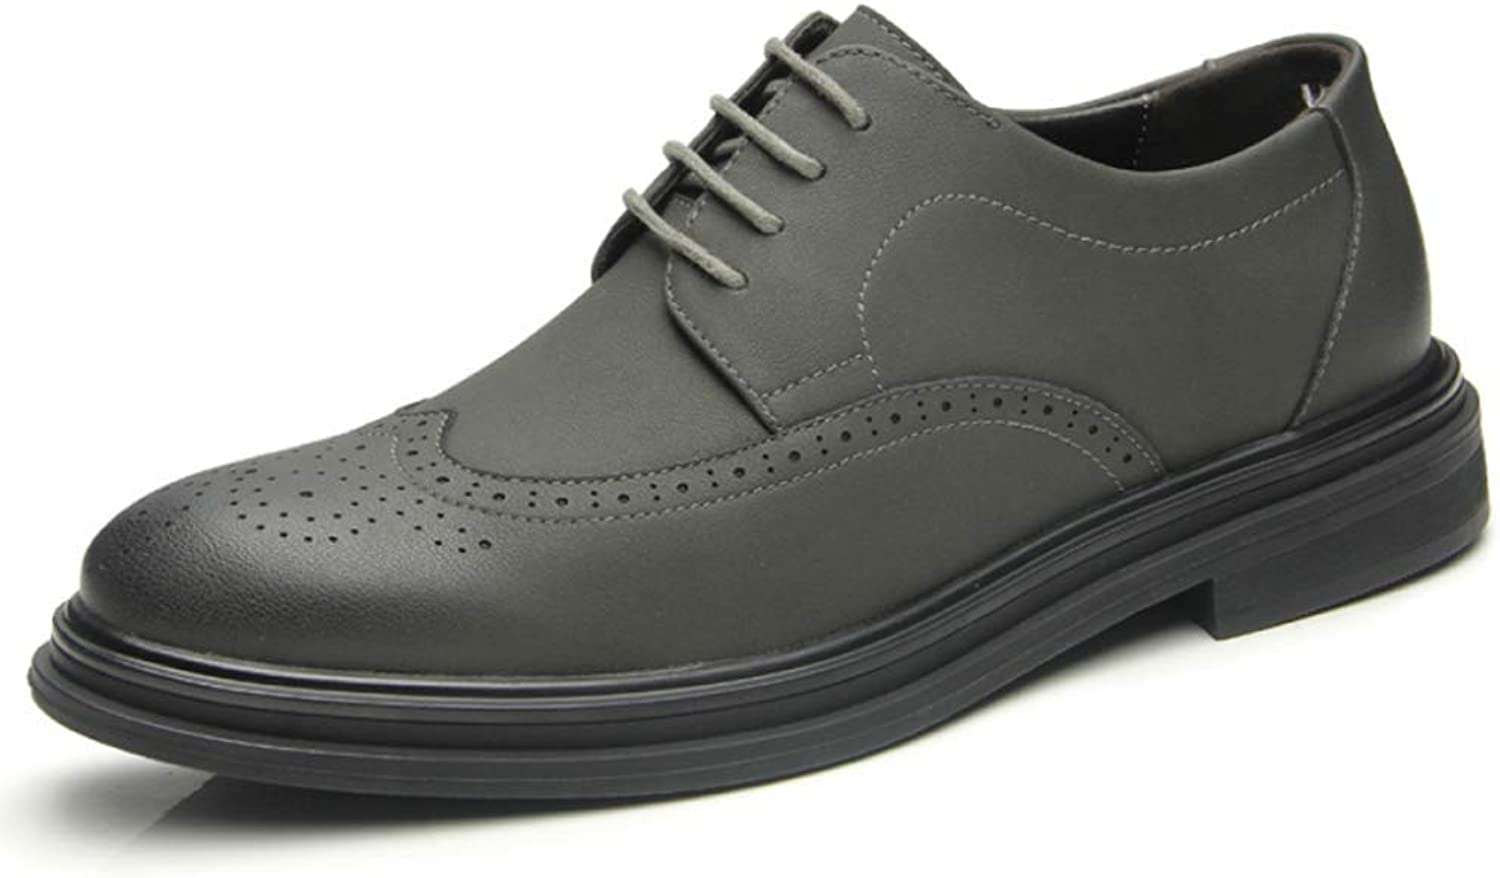 Mens Brogues Genuine Leather shoes Business Formal Dress shoes Round Toe Casual Non-slip Lace-ups shoes For Wedding Work Utility Footwear